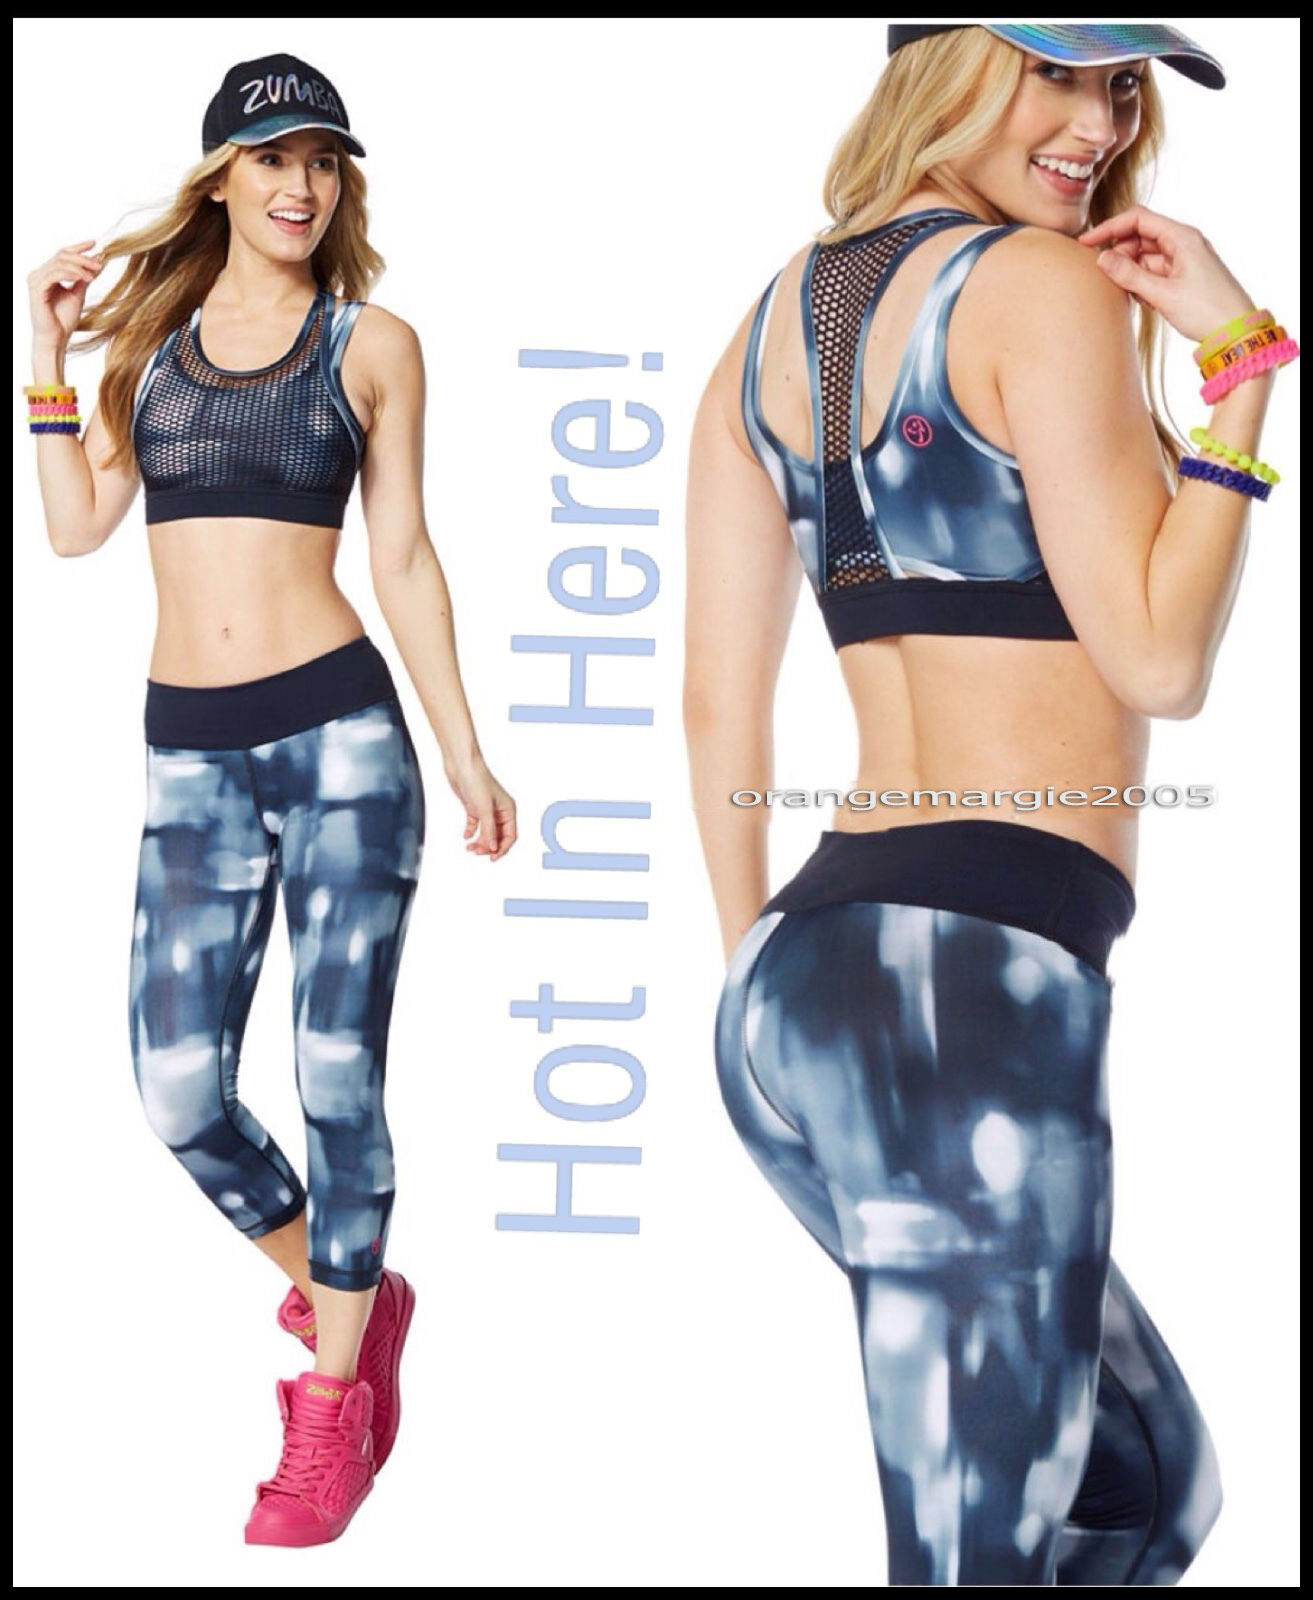 ZUMBA 2Pc.SET   Hot in Here Capri leggings (Zumba Logo in Pink Accent) + BRA TOP